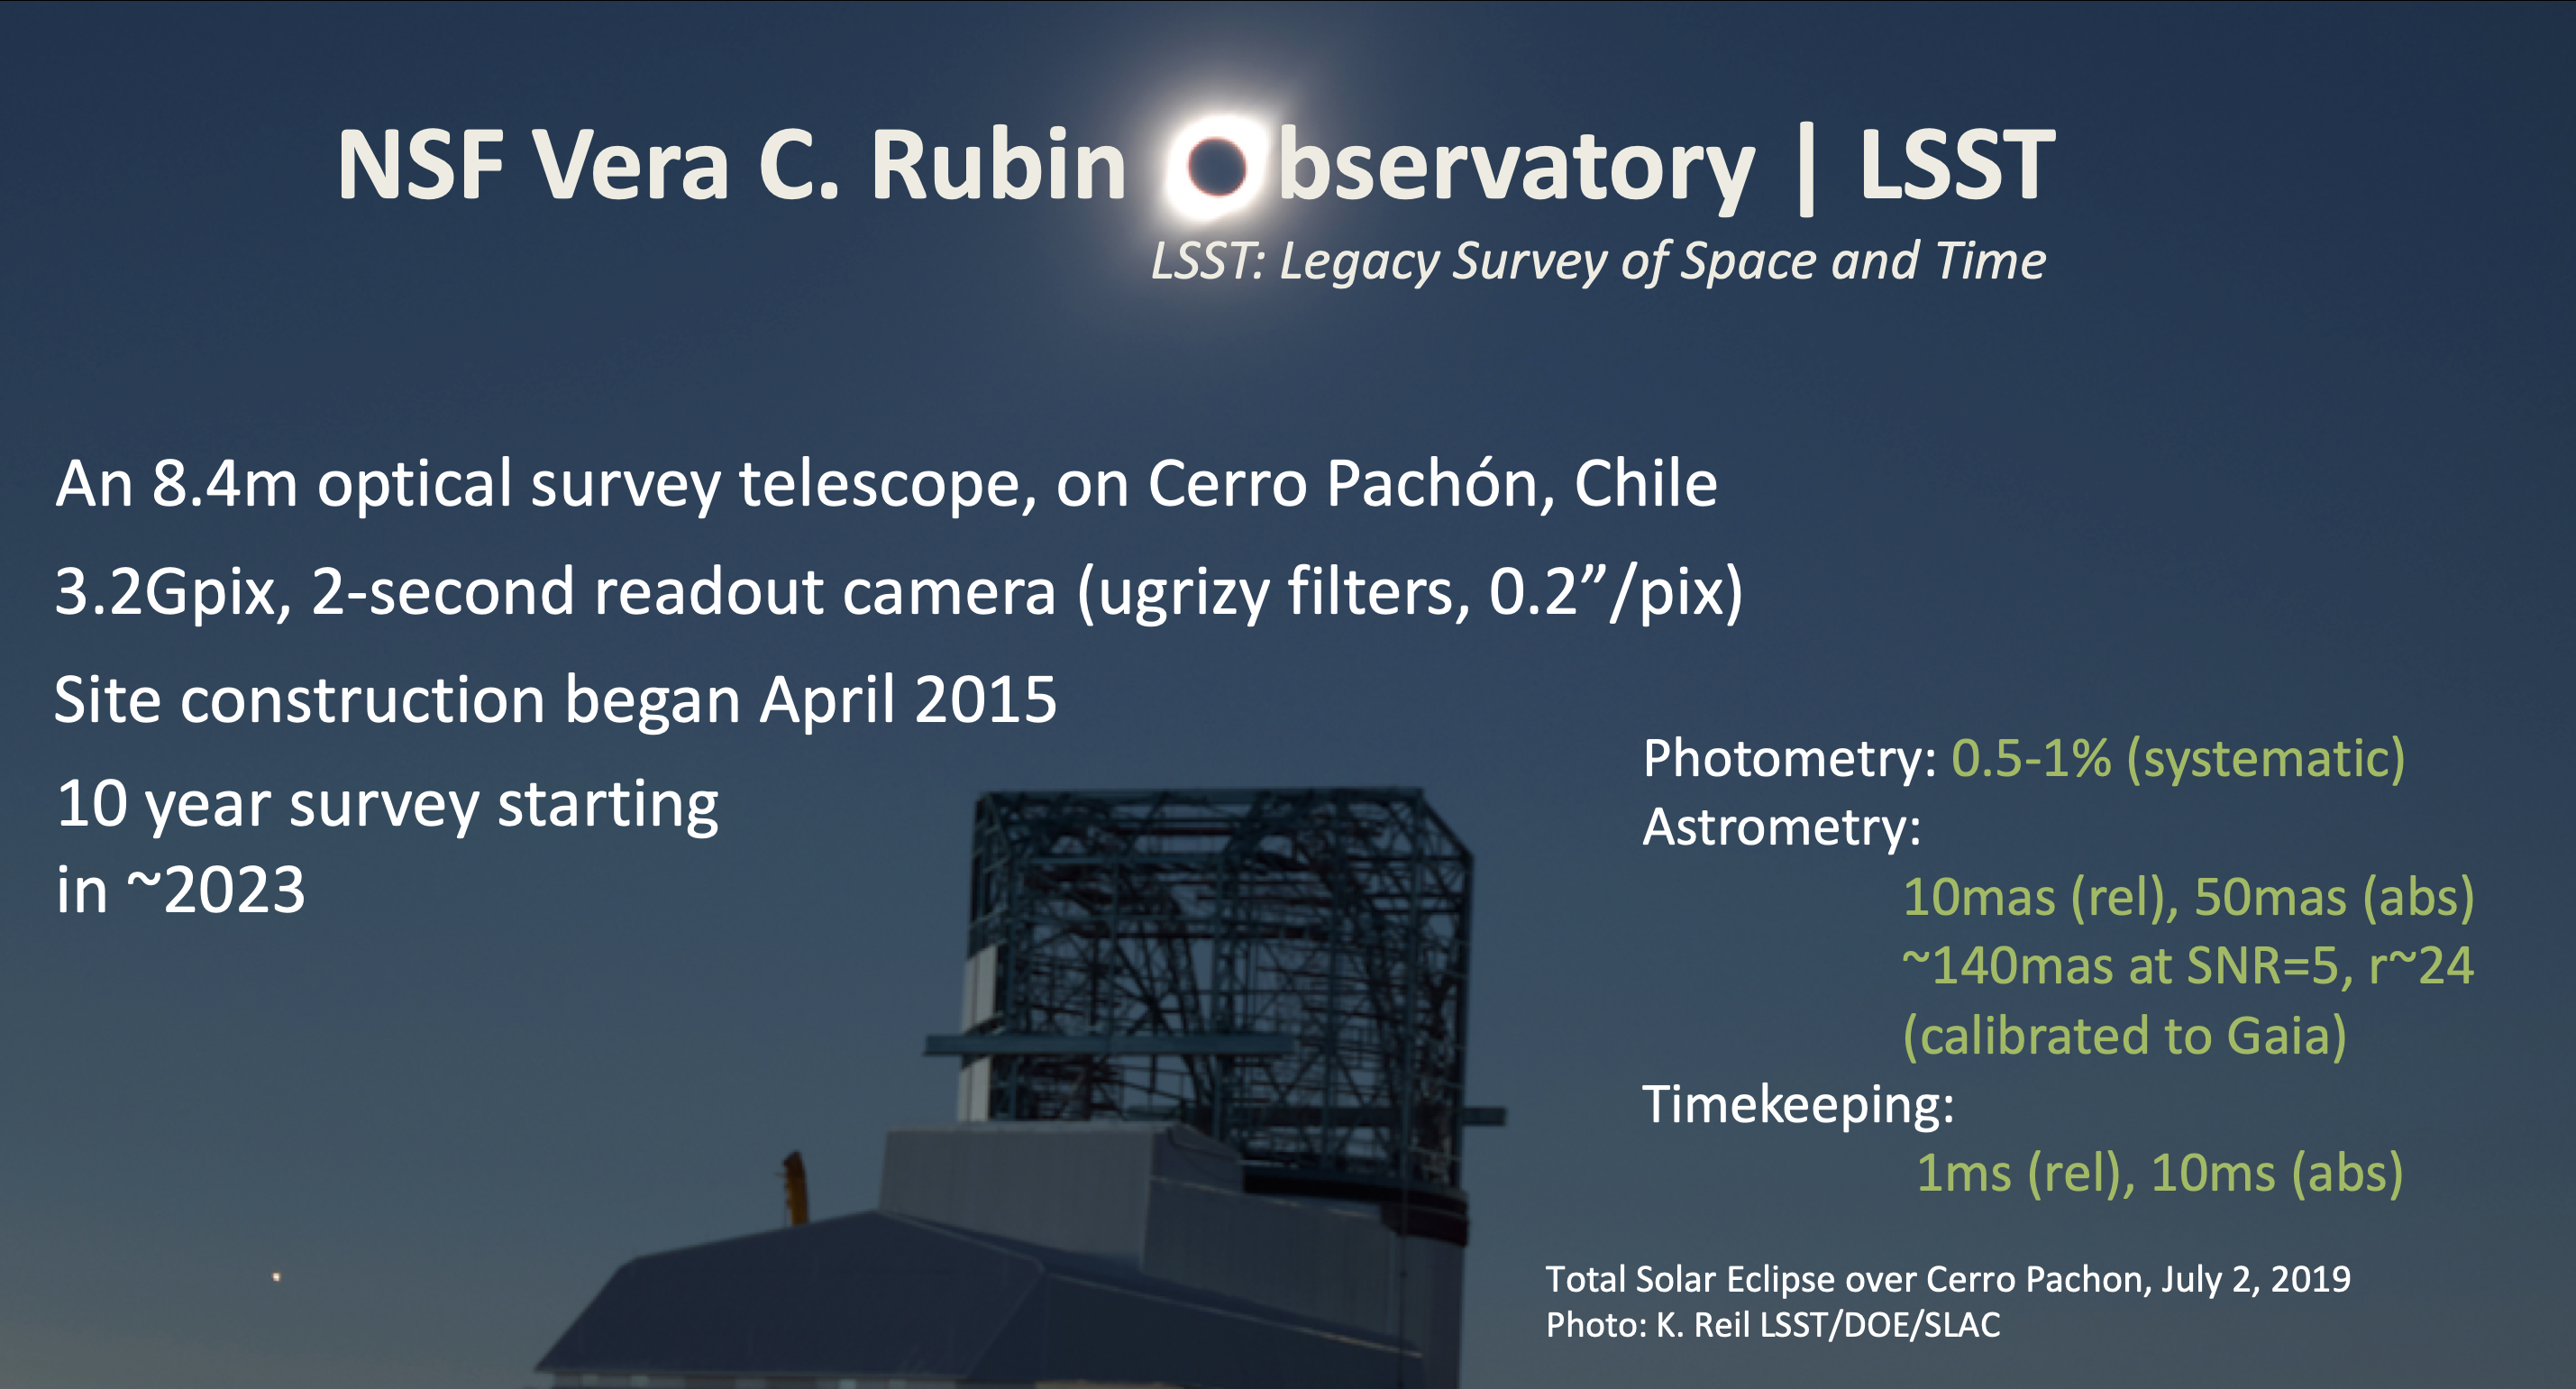 Figure defining Rubin Observatory and the LSST